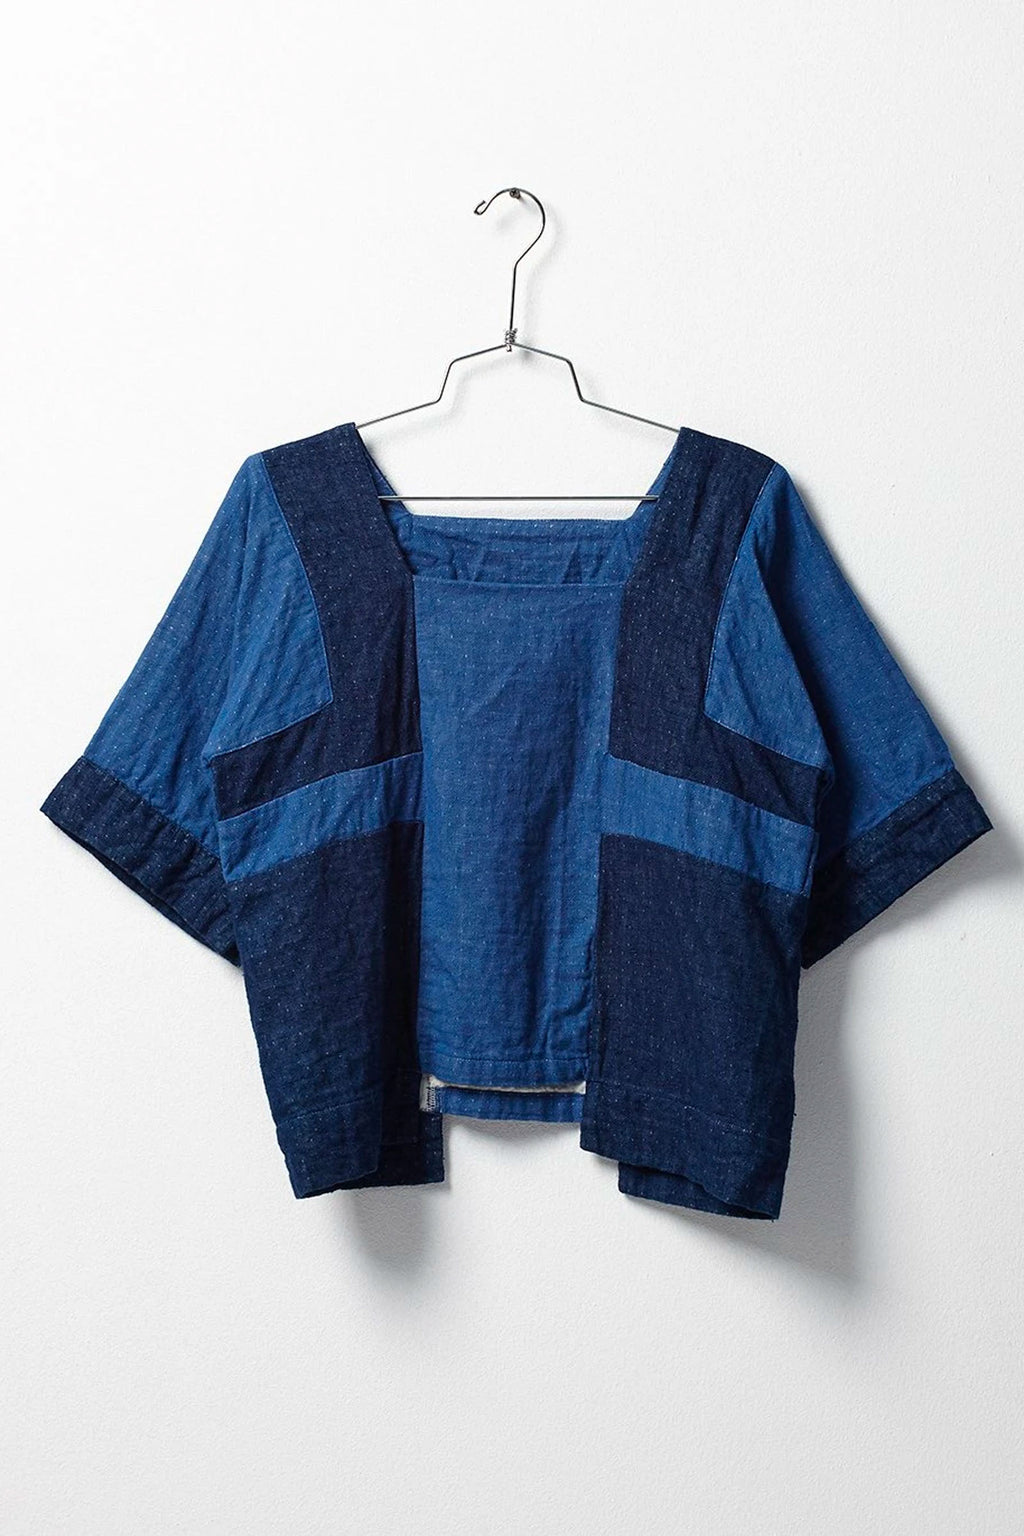 Atelier Delphine Block Top in Indigo Patchwork